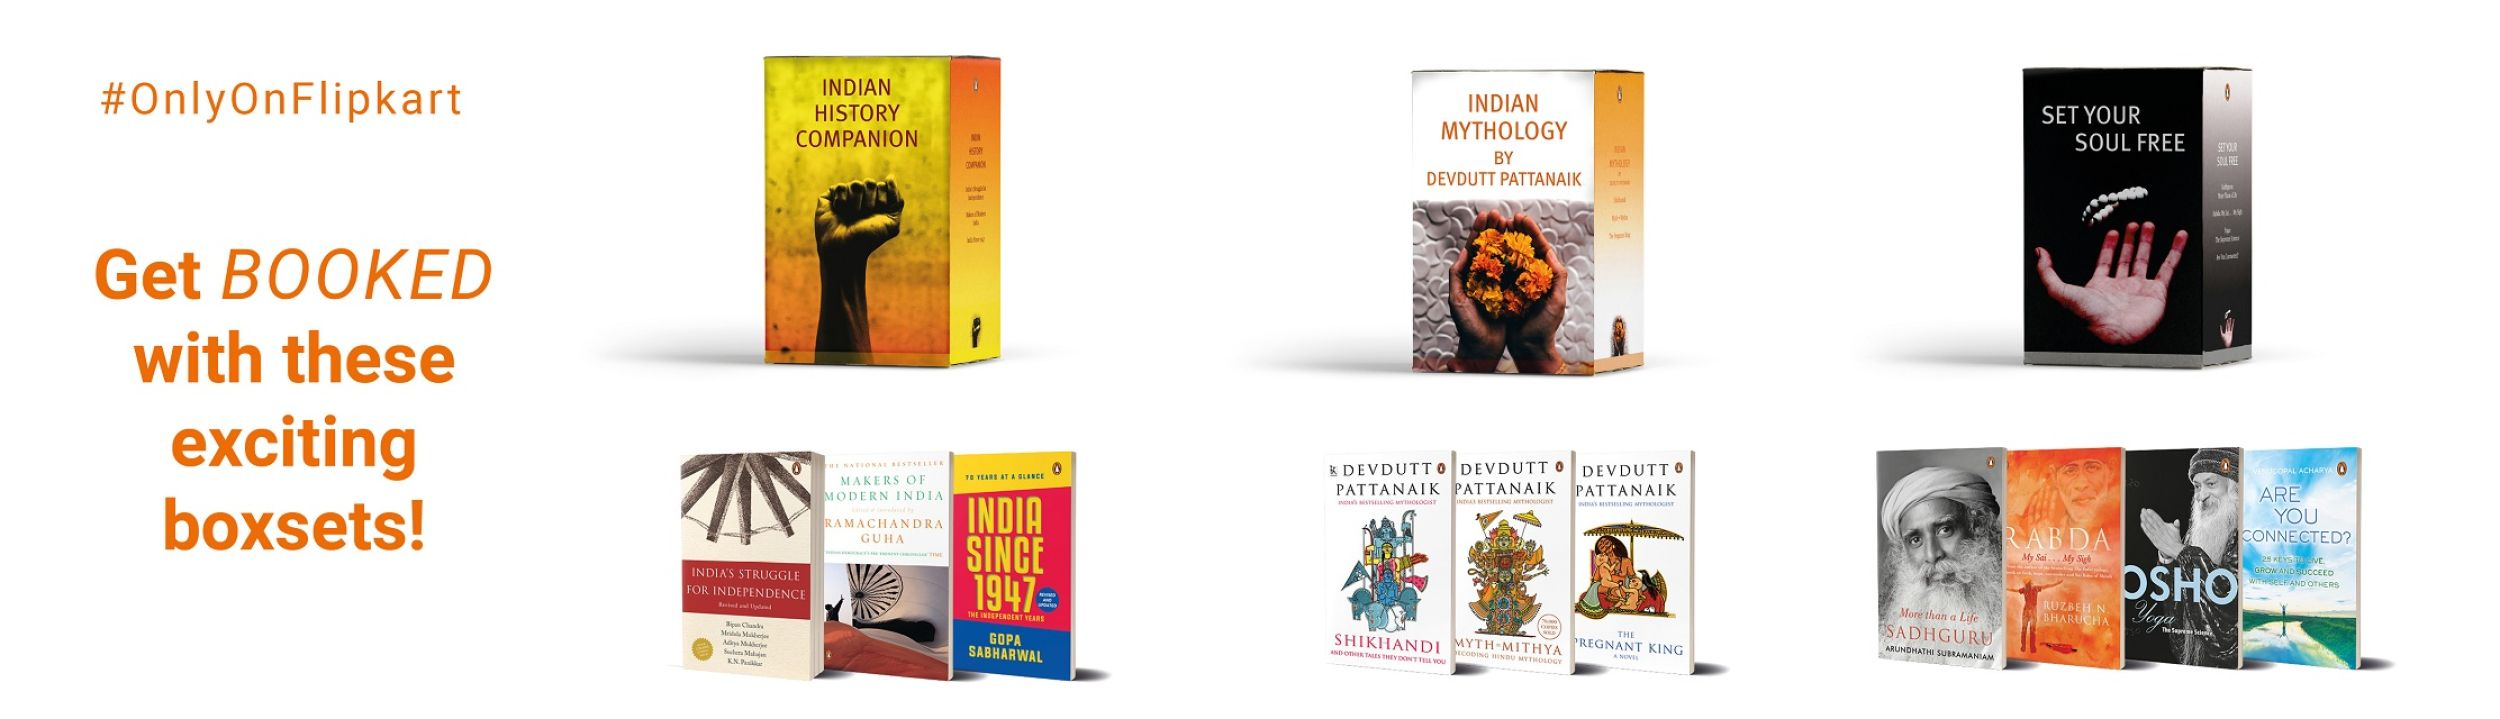 Books online store buy books online at best price in india wdxxedc wdxxedc fandeluxe Gallery